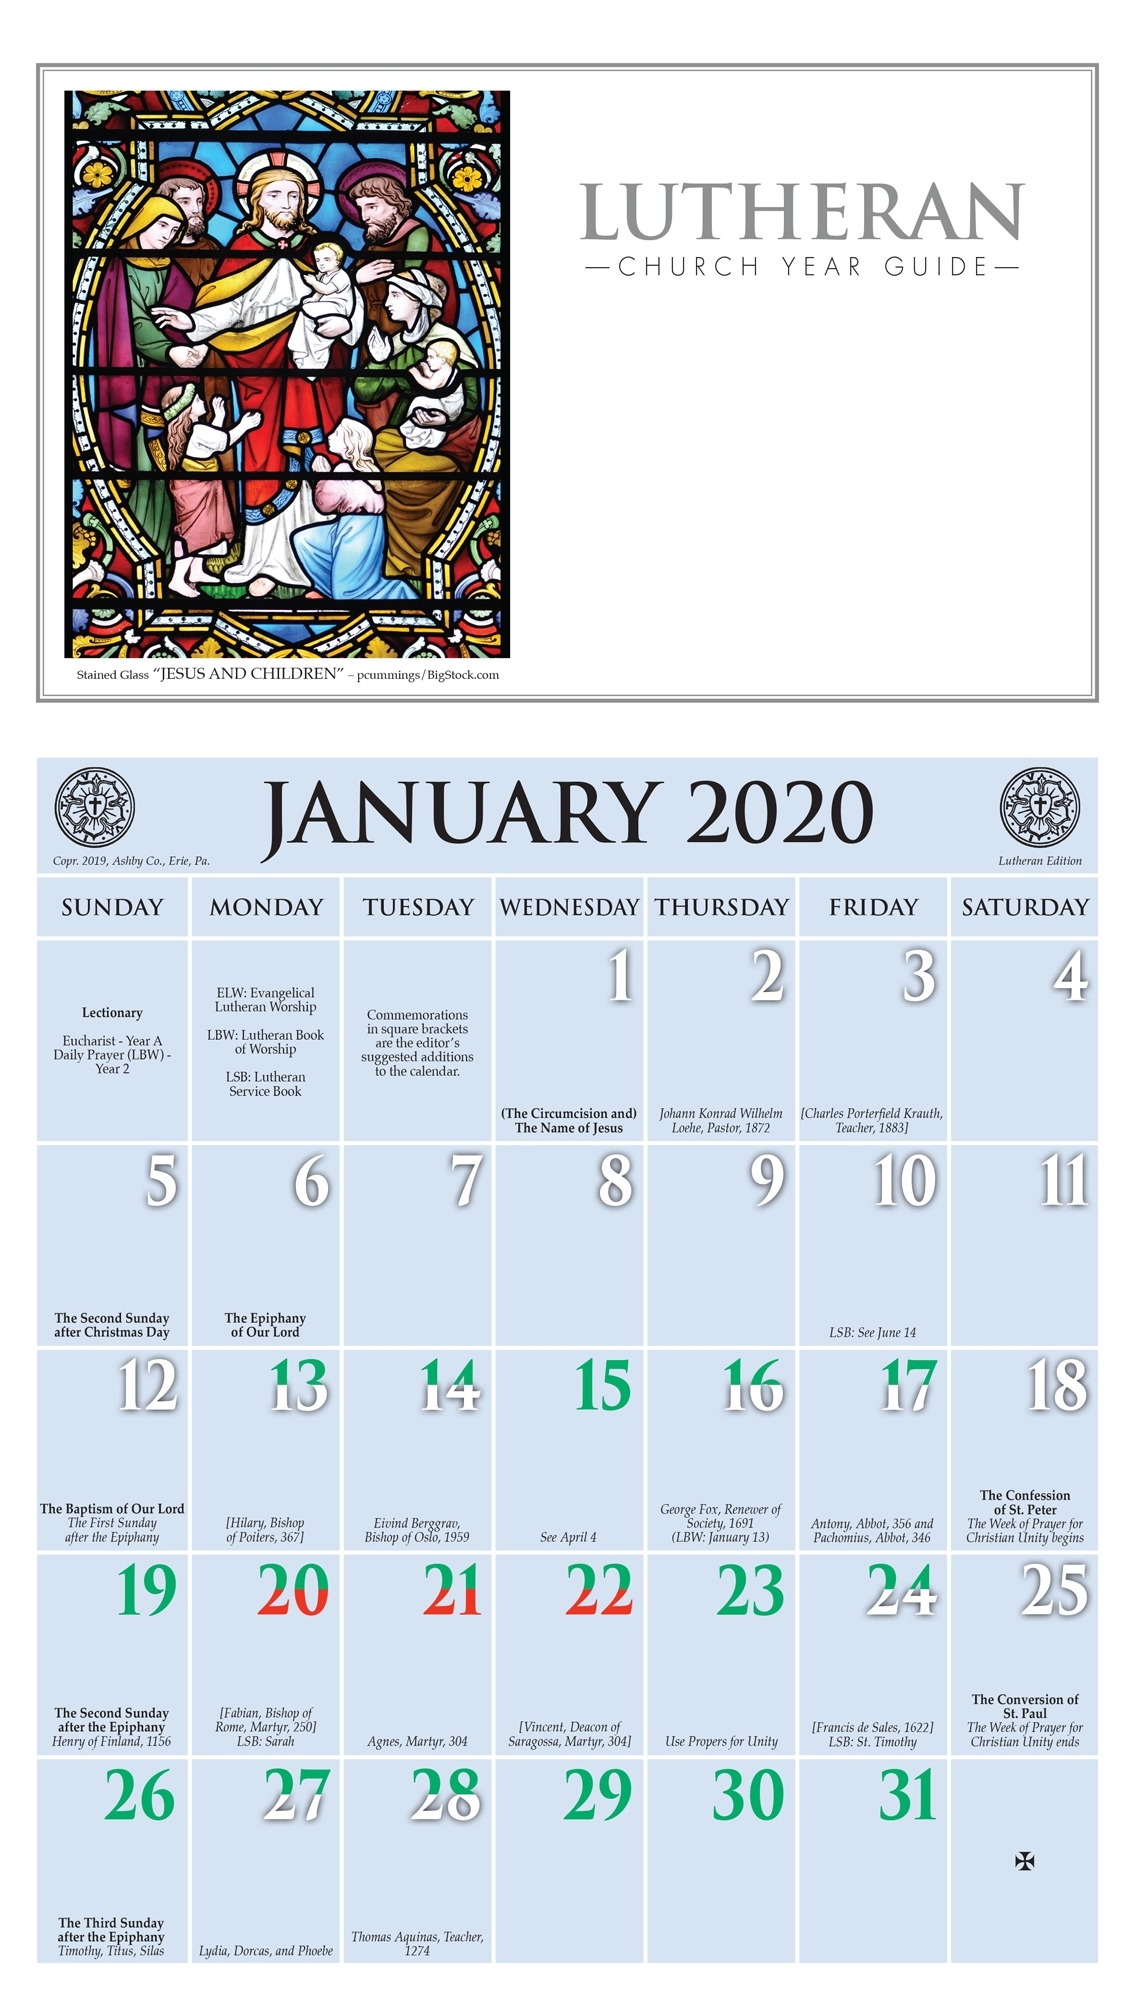 2020 Church Year Calendar for Liturgical Calendar For Yearr 2020